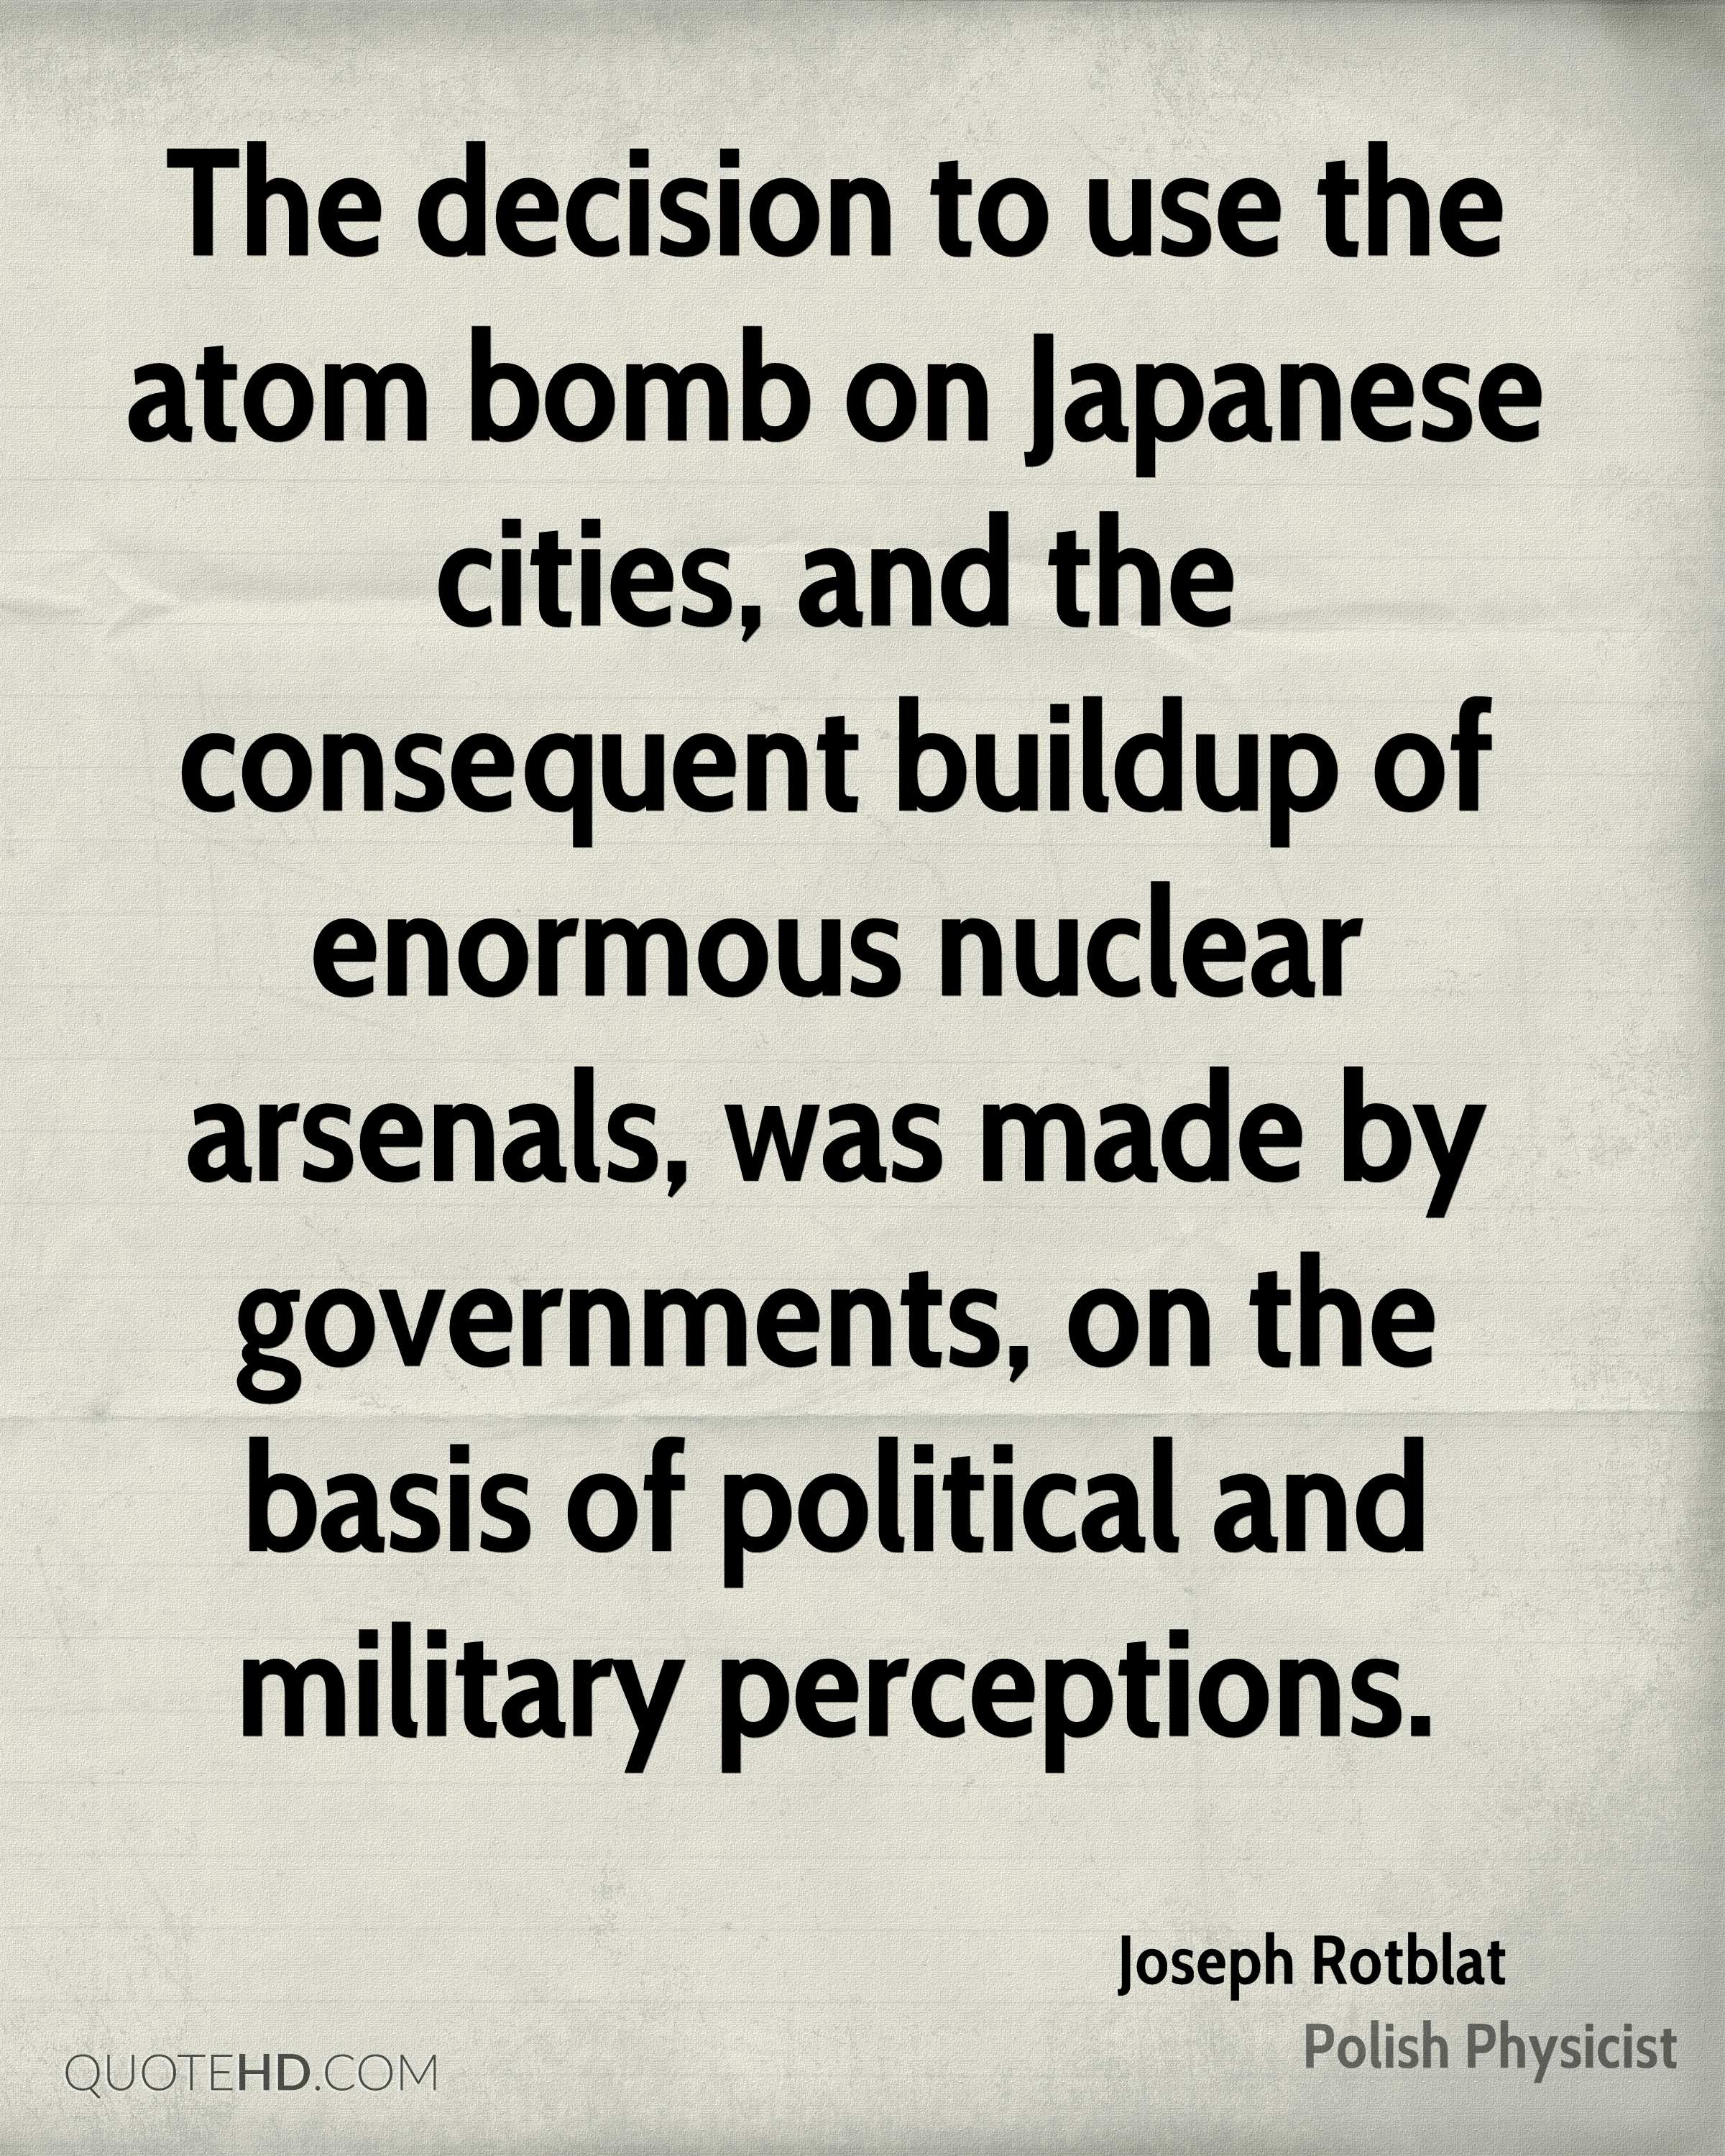 The decision to use the atom bomb on Japanese cities, and the consequent buildup of enormous nuclear arsenals, was made by governments, on the basis of political and military perceptions.